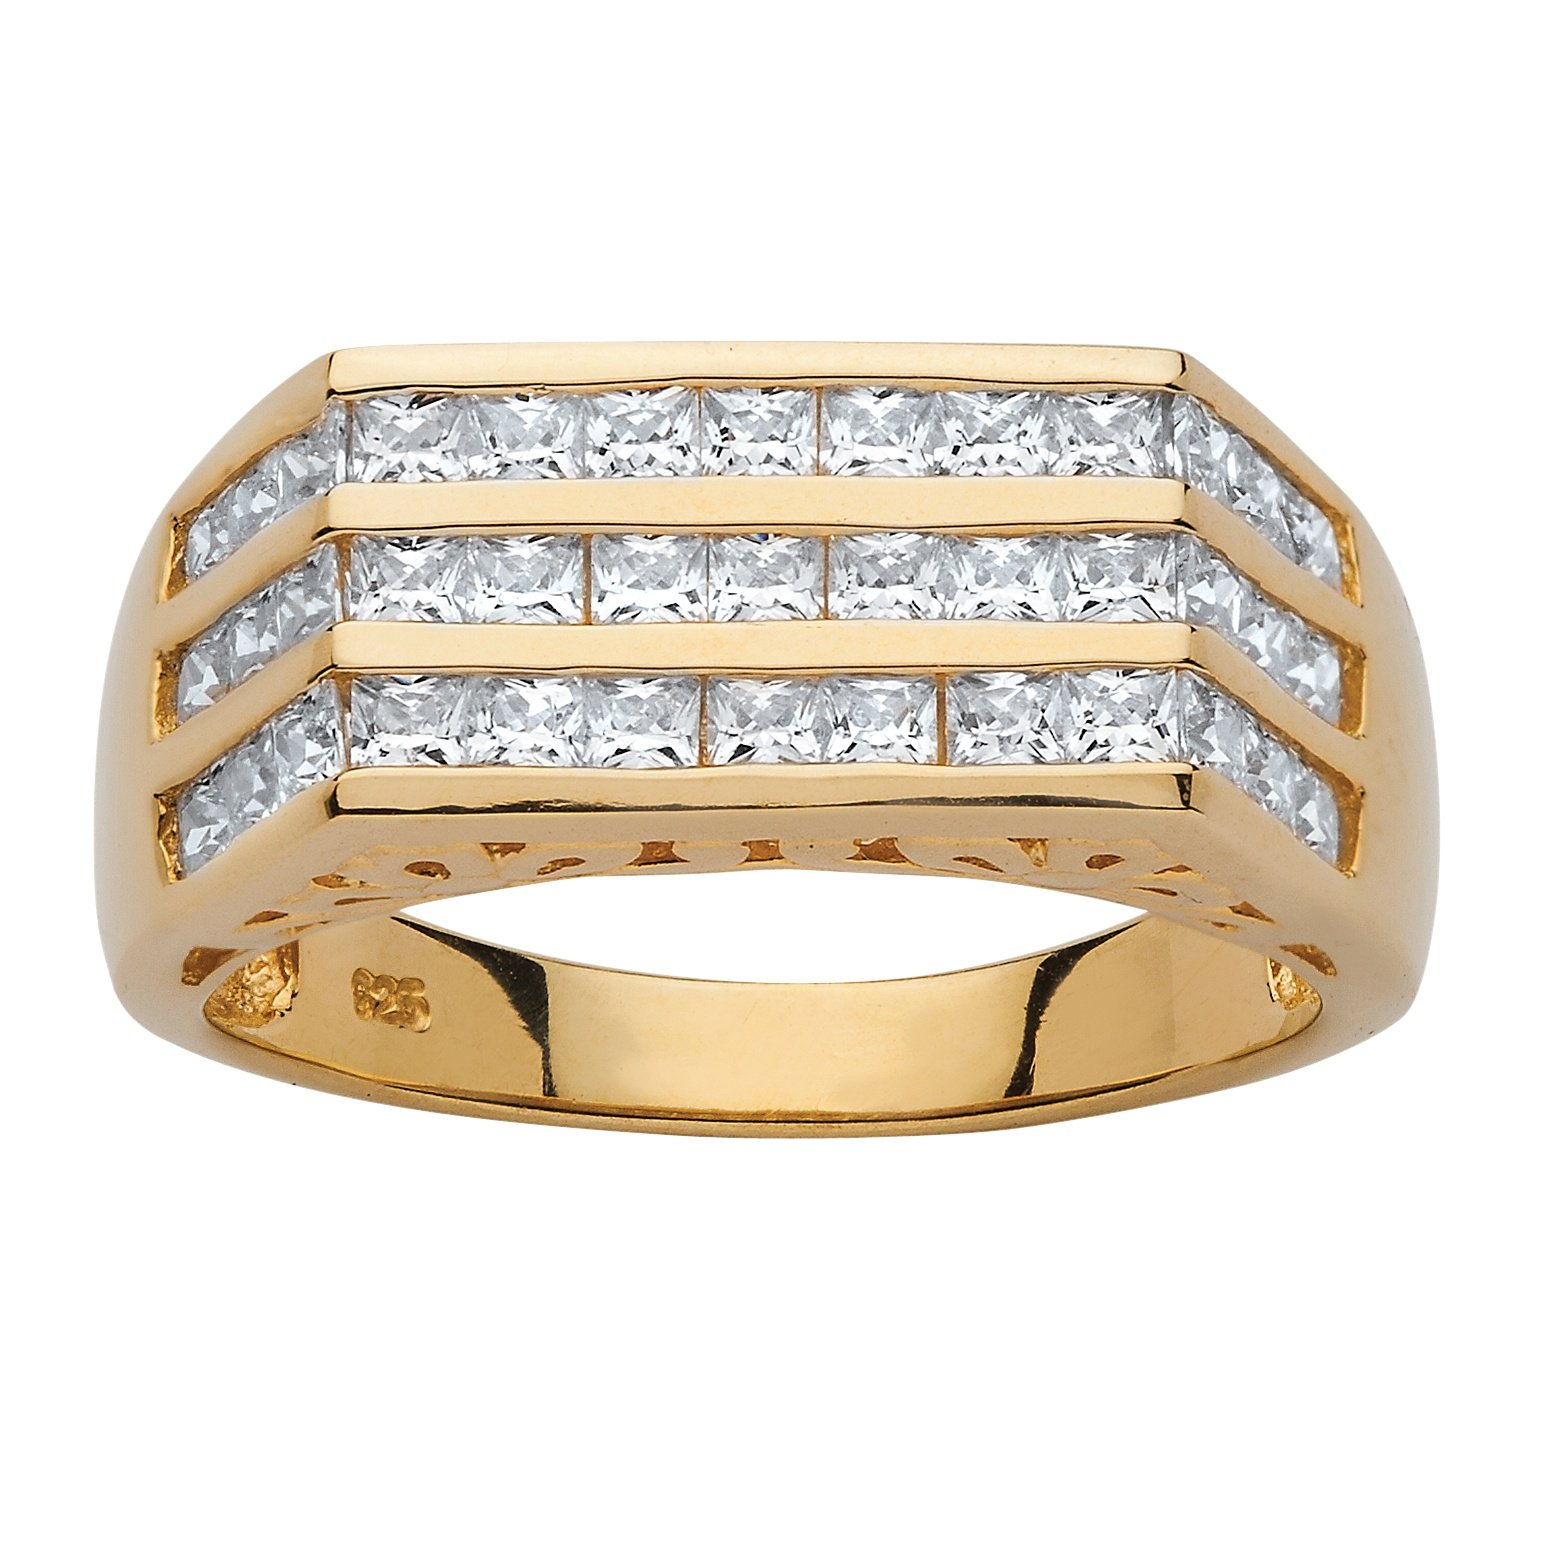 Men's Square-Cut White Cubic Zirconia 14k Gold over .925 Sterling Silver Triple Row Ring Size 11